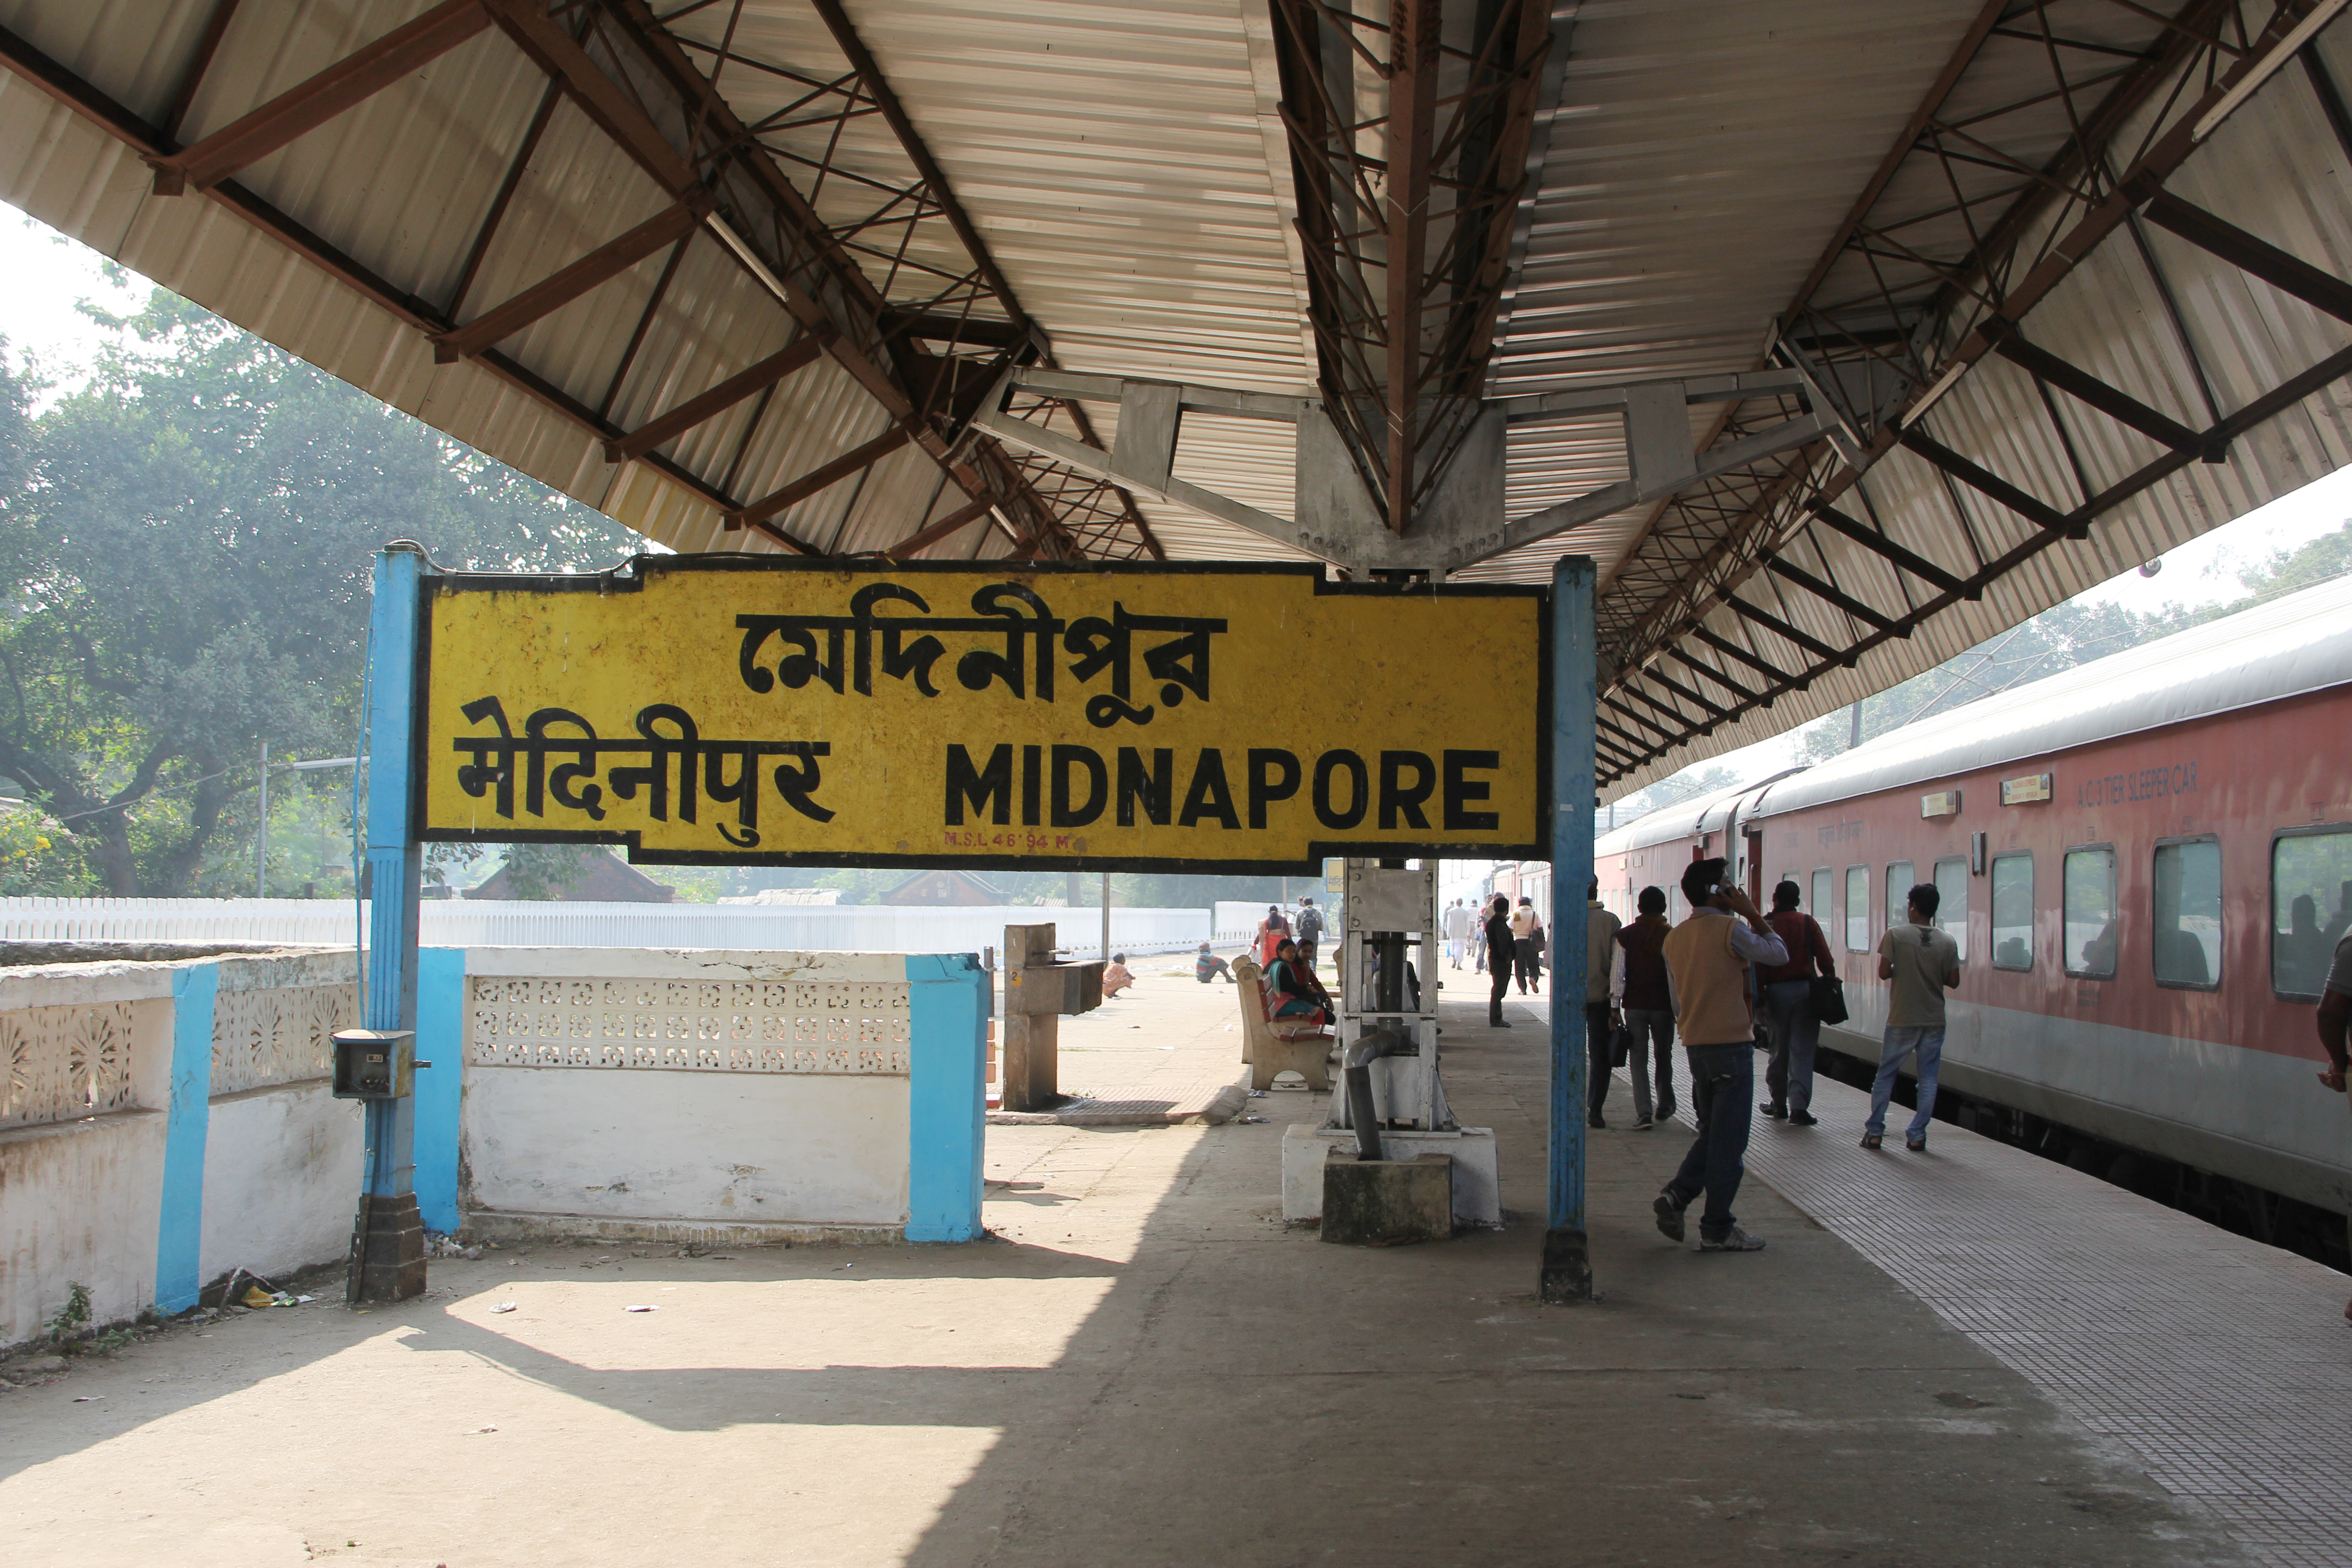 File:Midnapore (MDN), Midnapore Railway Station 02.JPG ...